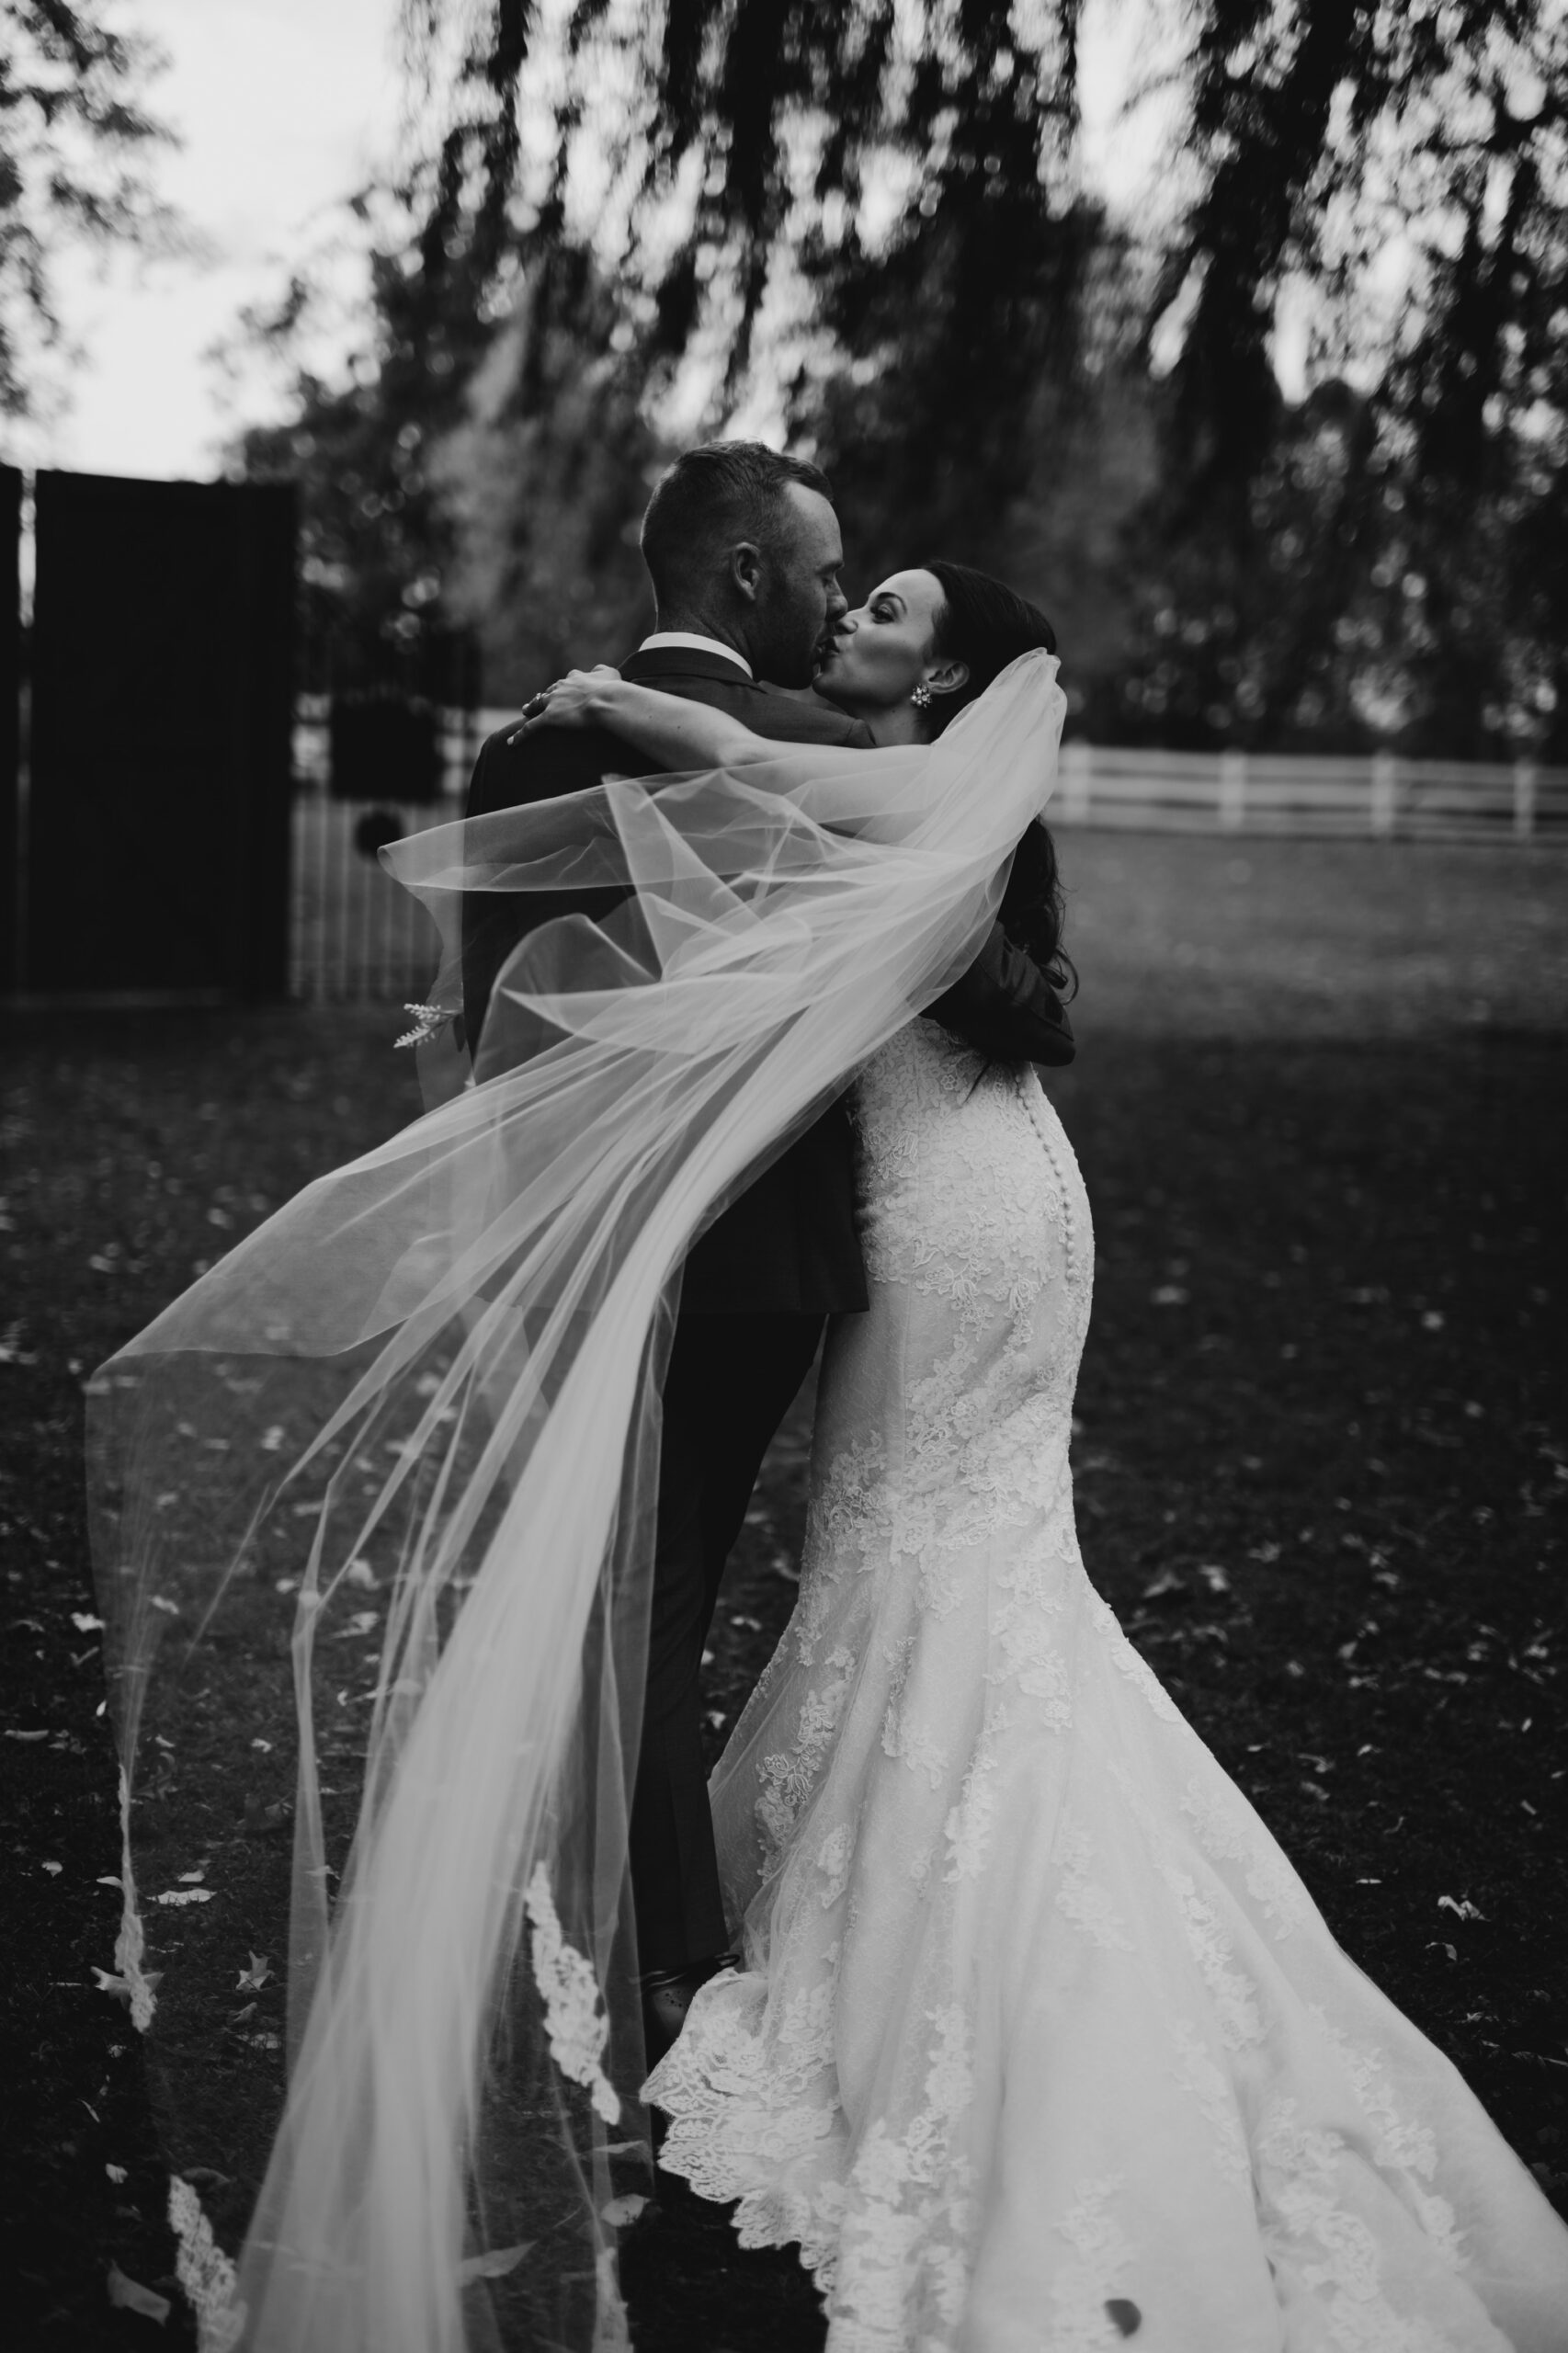 bride and groom kissing and bride's veil flying in the wind